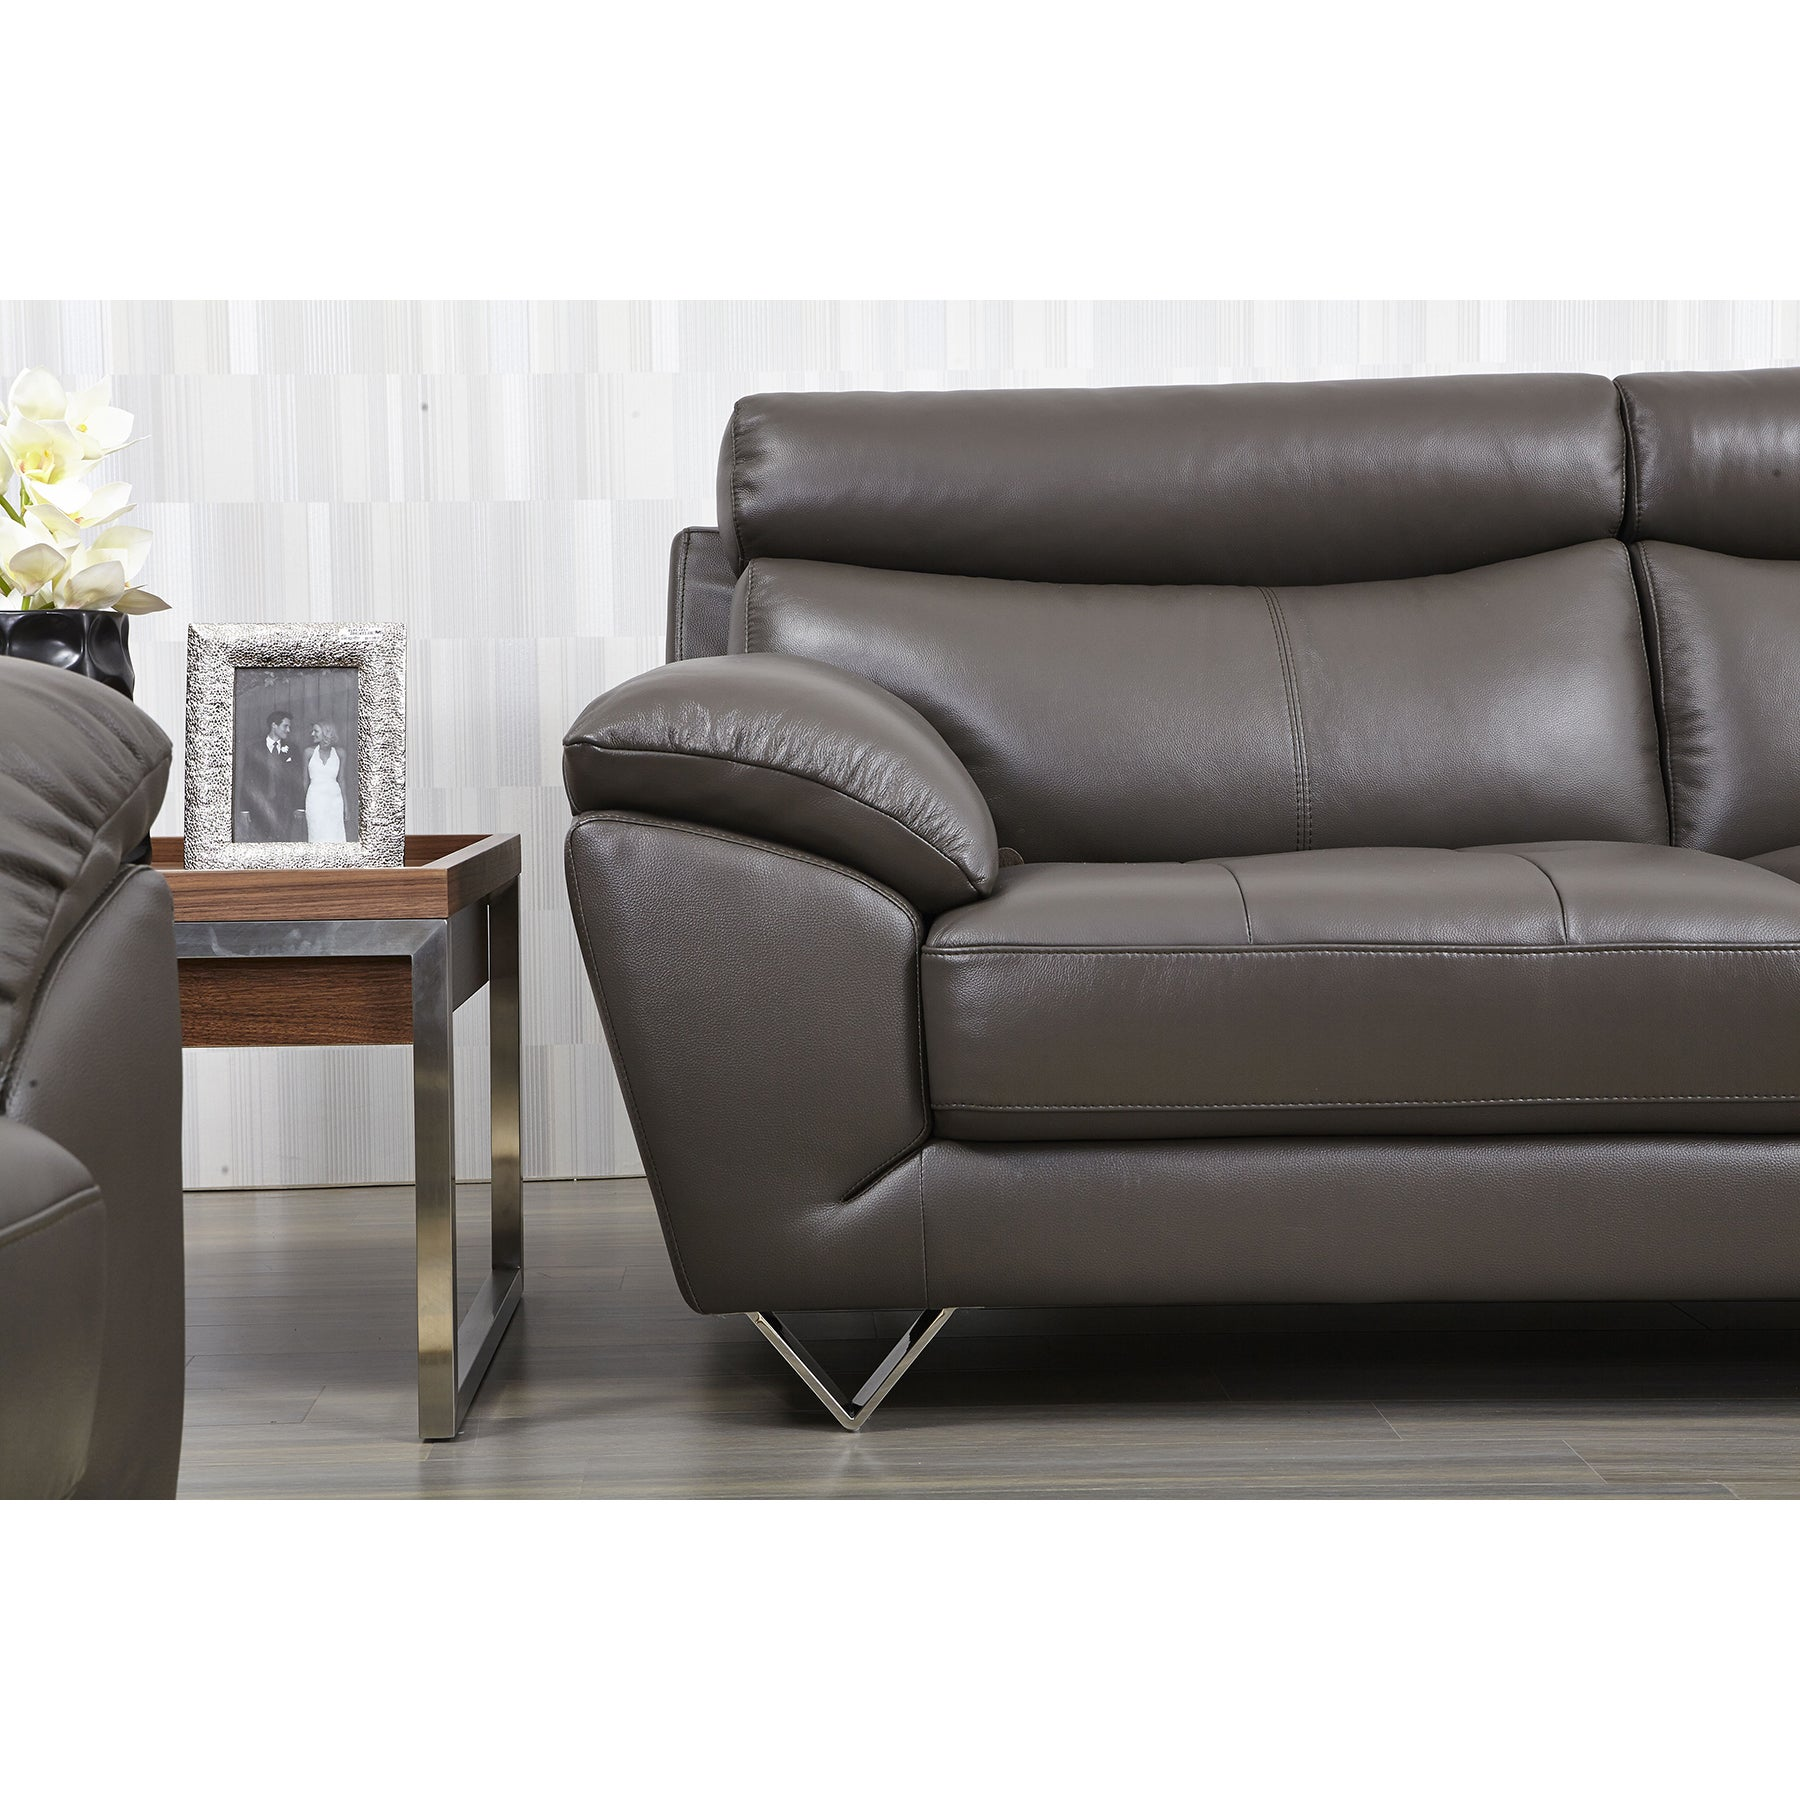 Luca Home Contemporary Grey Leather Match Sofa Free Shipping Today 10095455